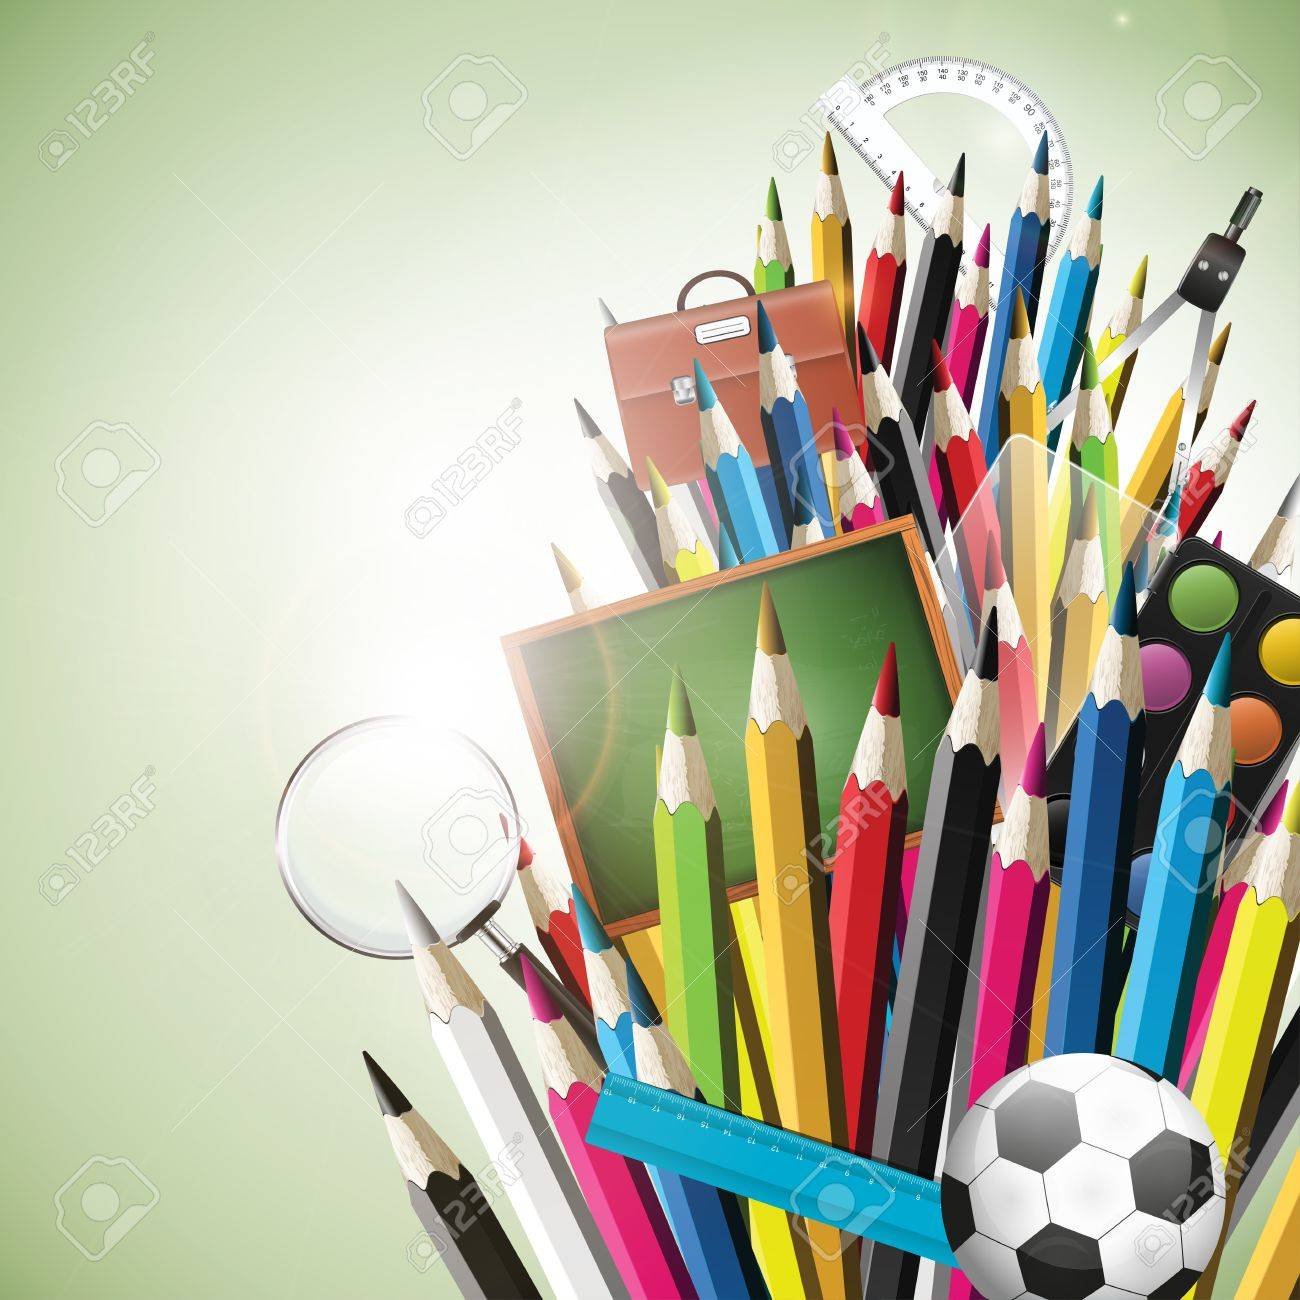 Colorful crayons with school supplies on freen background Stock Vector - 20902806